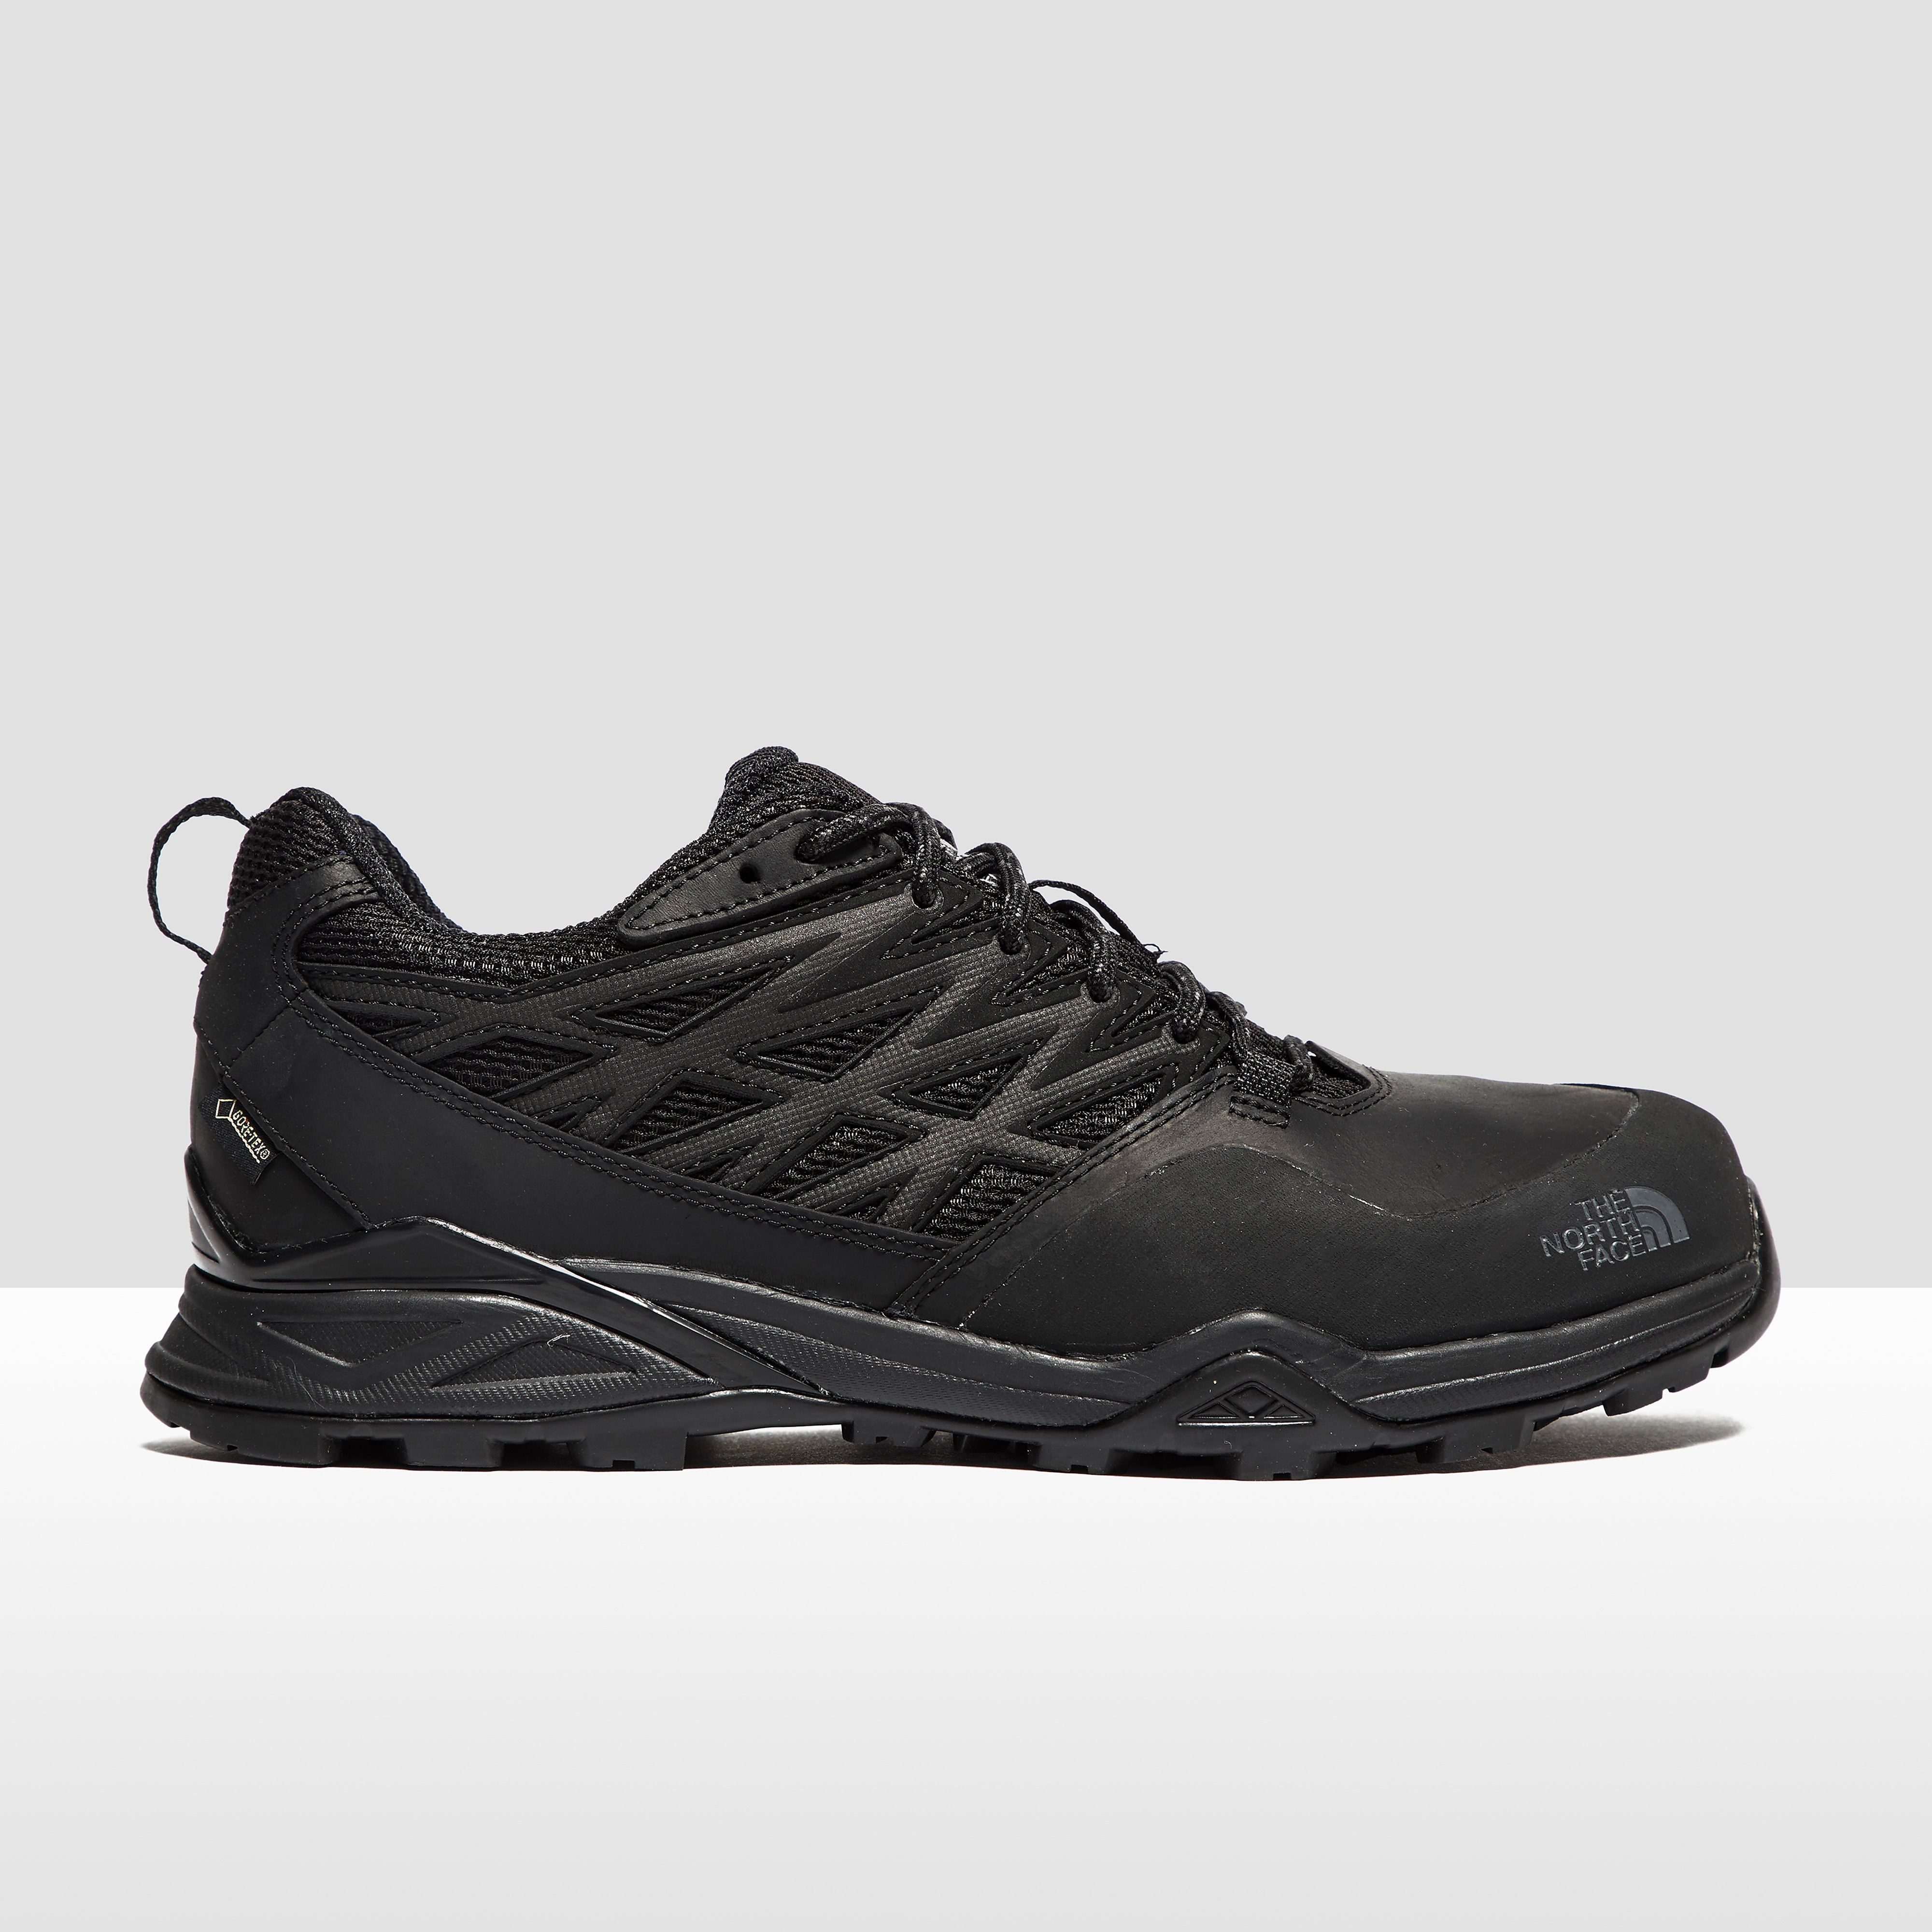 The North Face Men's Hedgehog Hike GORE-TEX Shoes